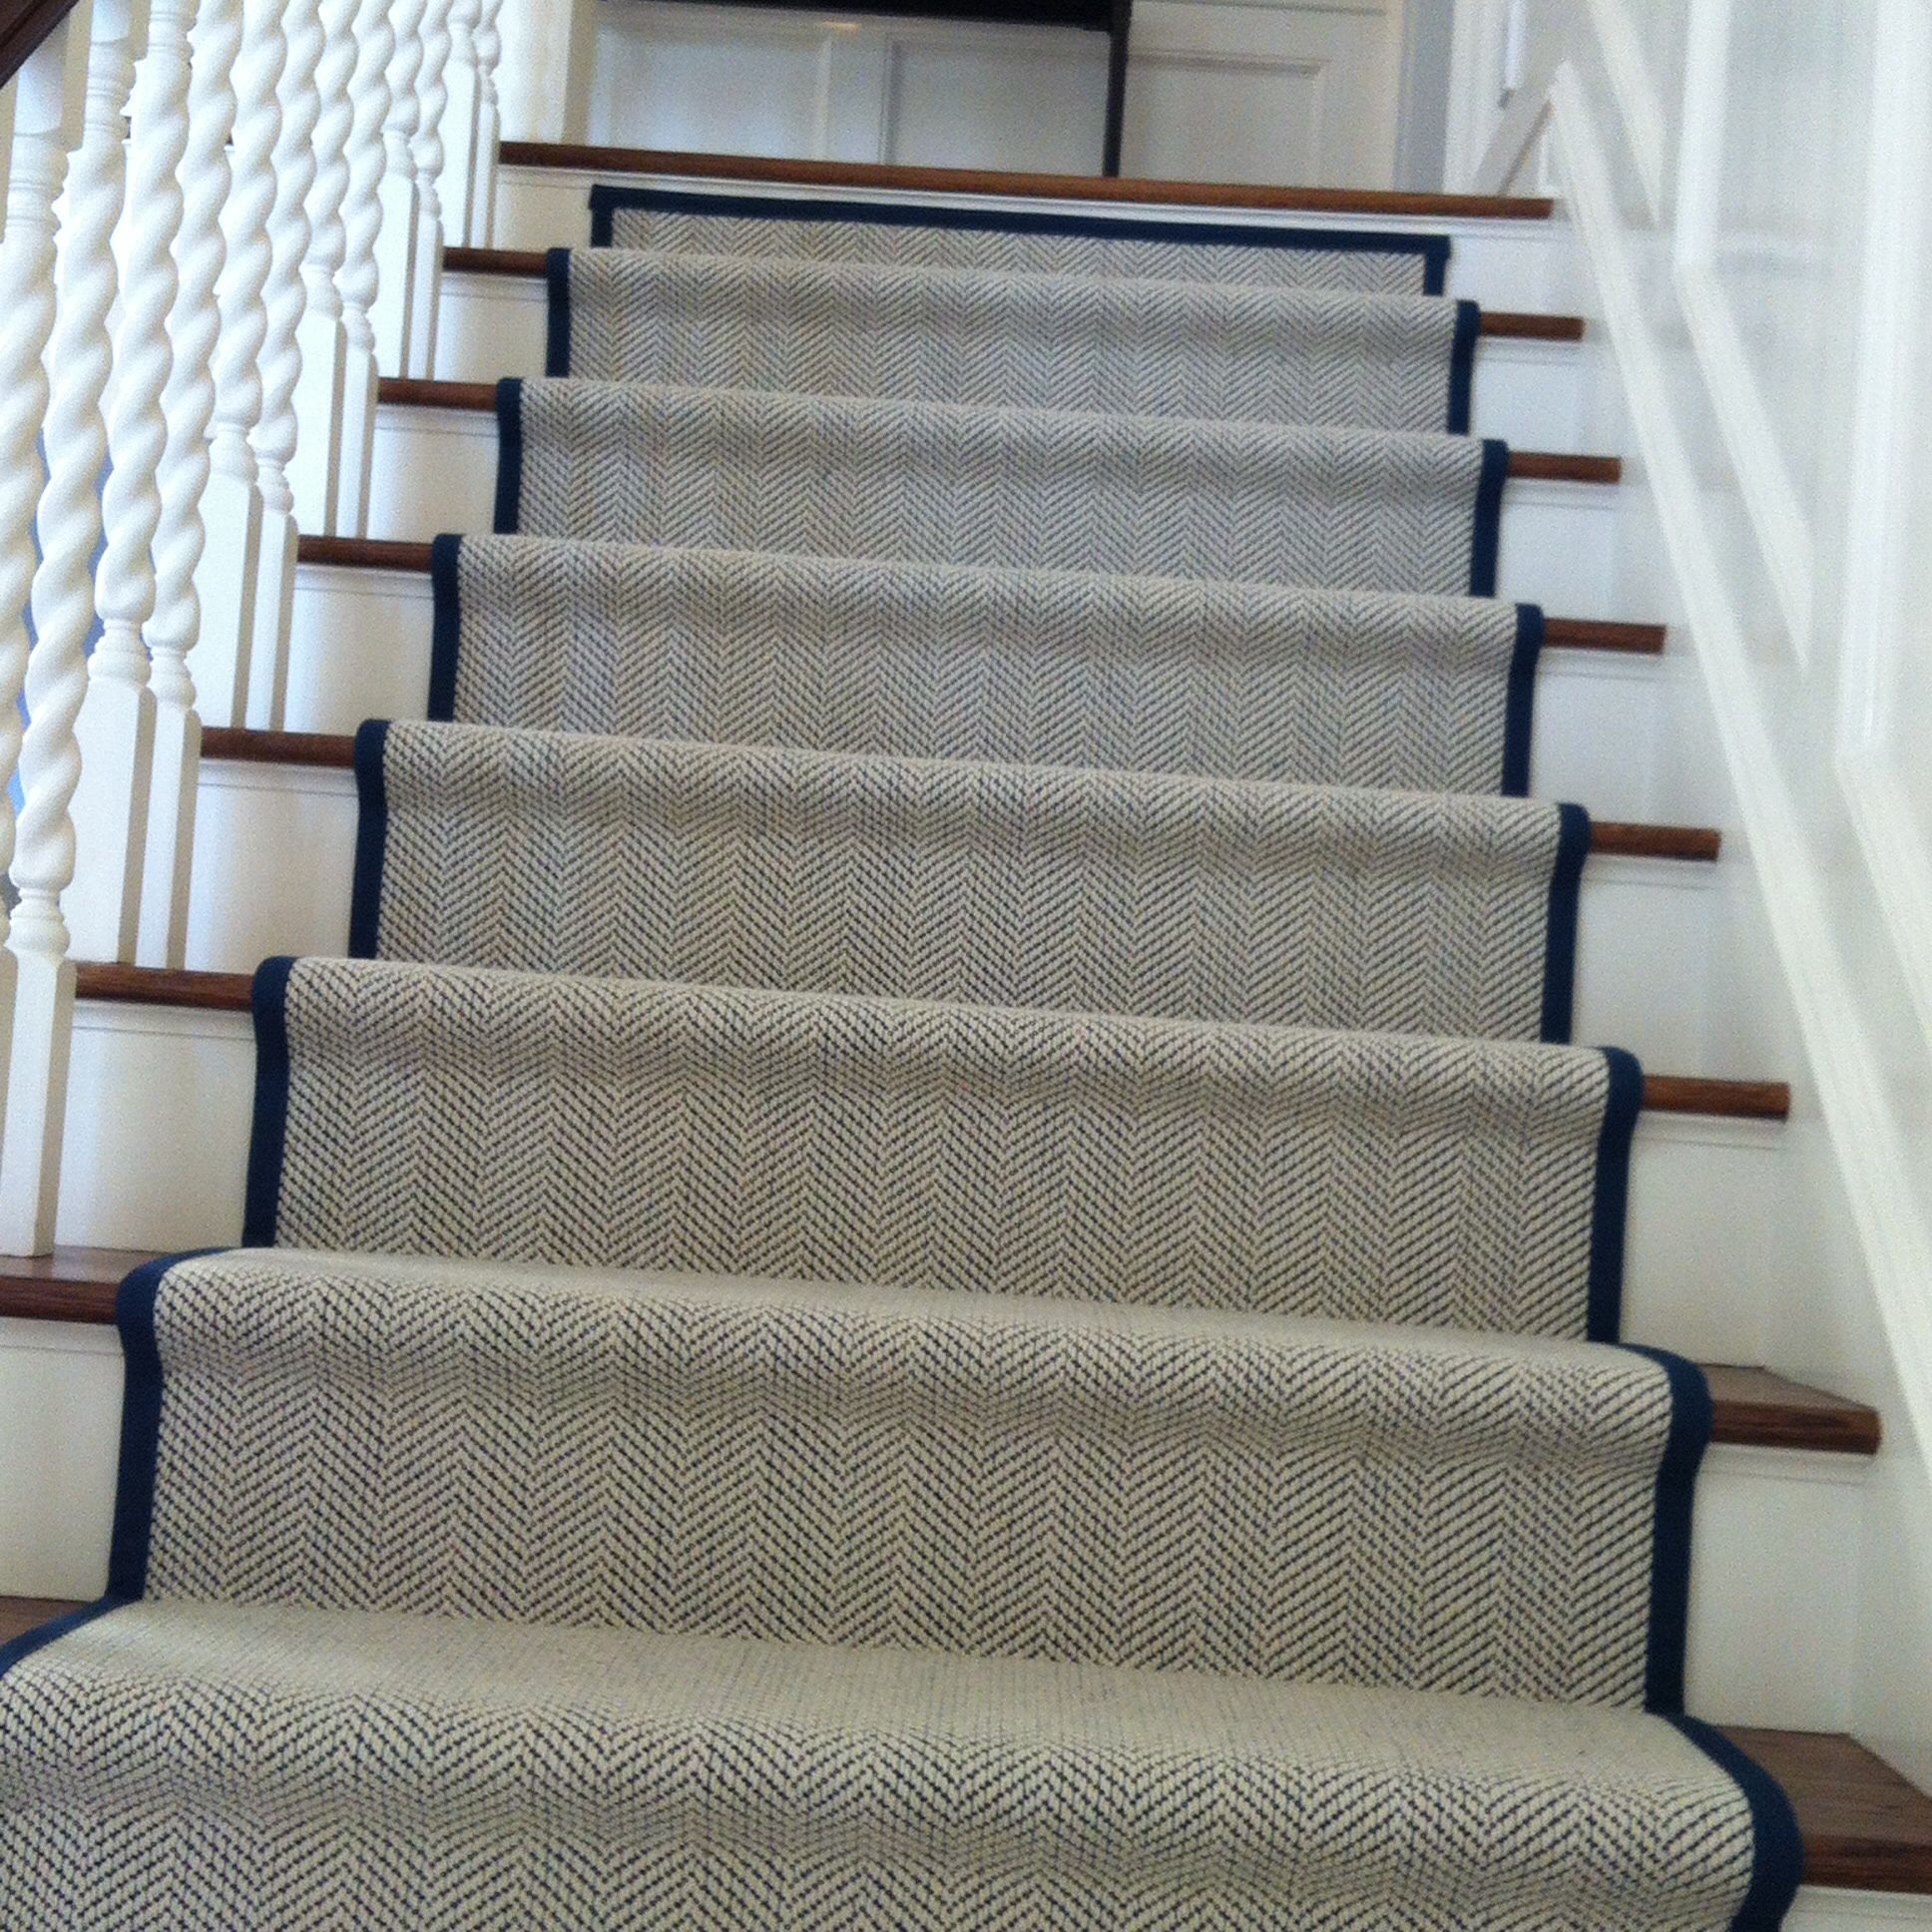 Best My New Staircase Runner Herringbone With A Marine Blue 400 x 300